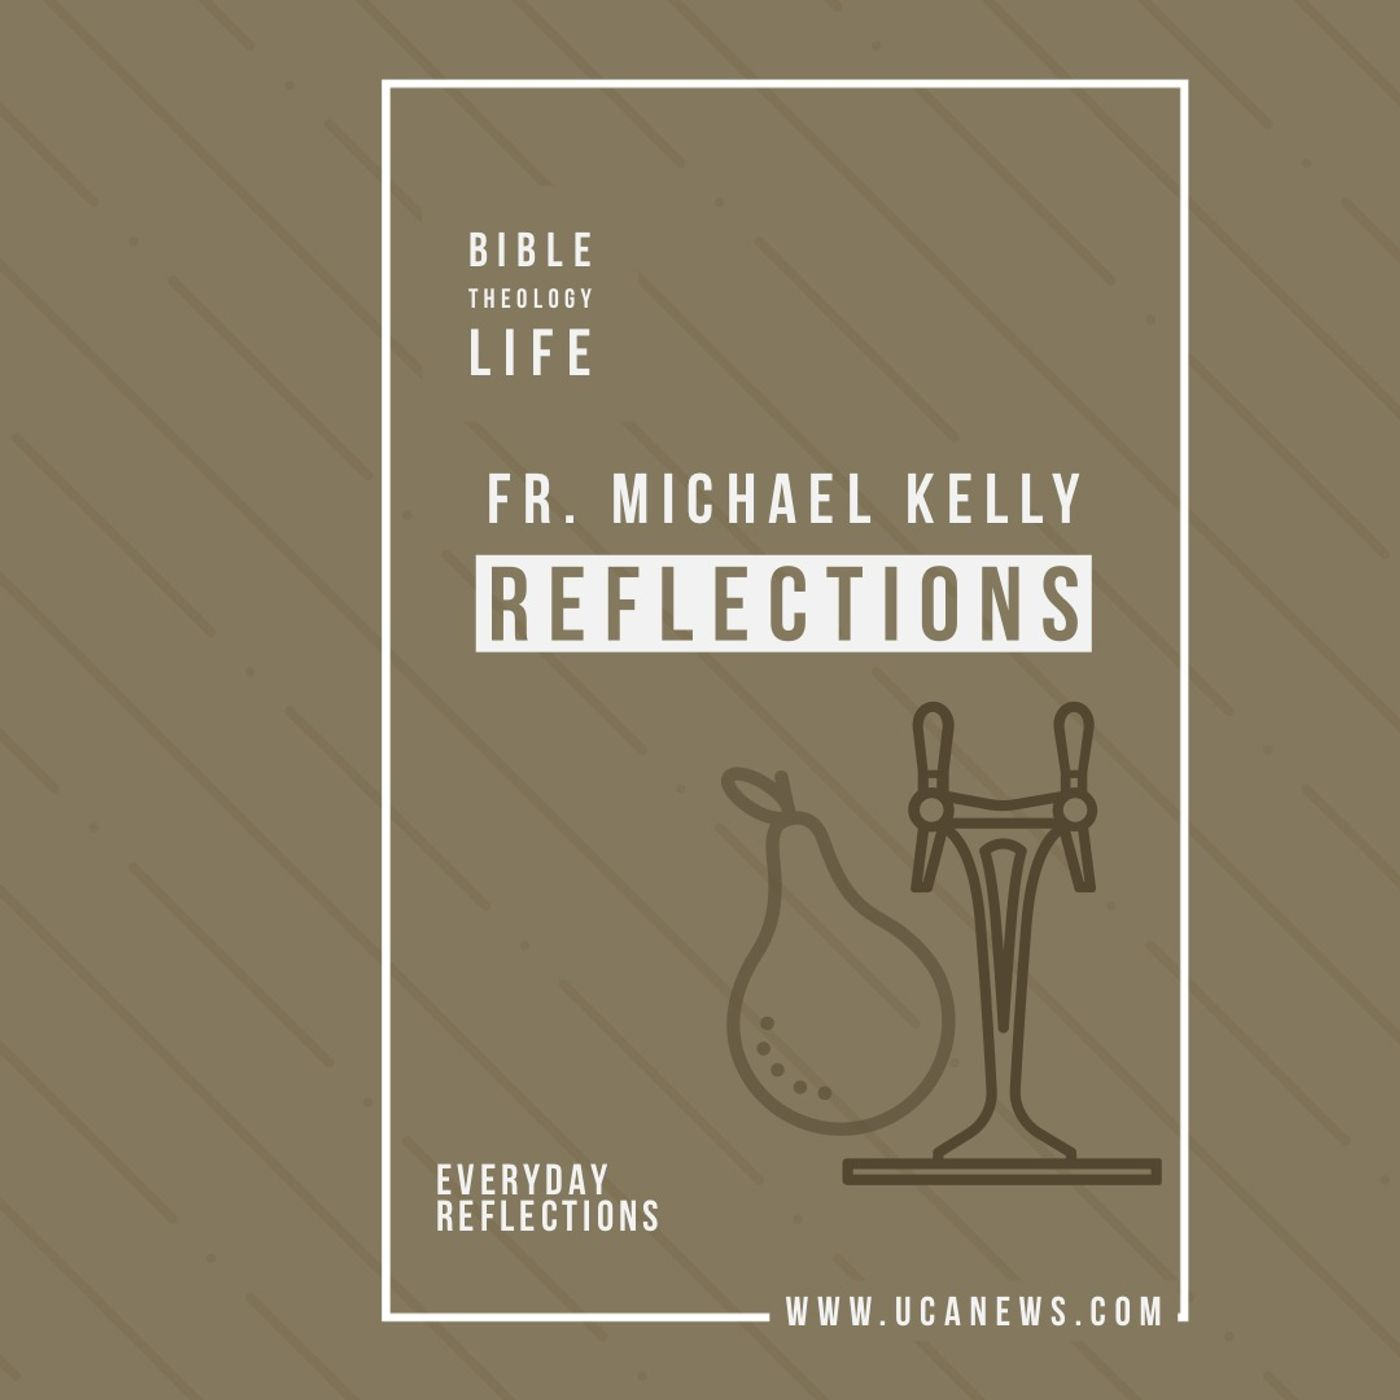 Reflections with Fr. Michael Kelly - Monday 22 Feb, 2021